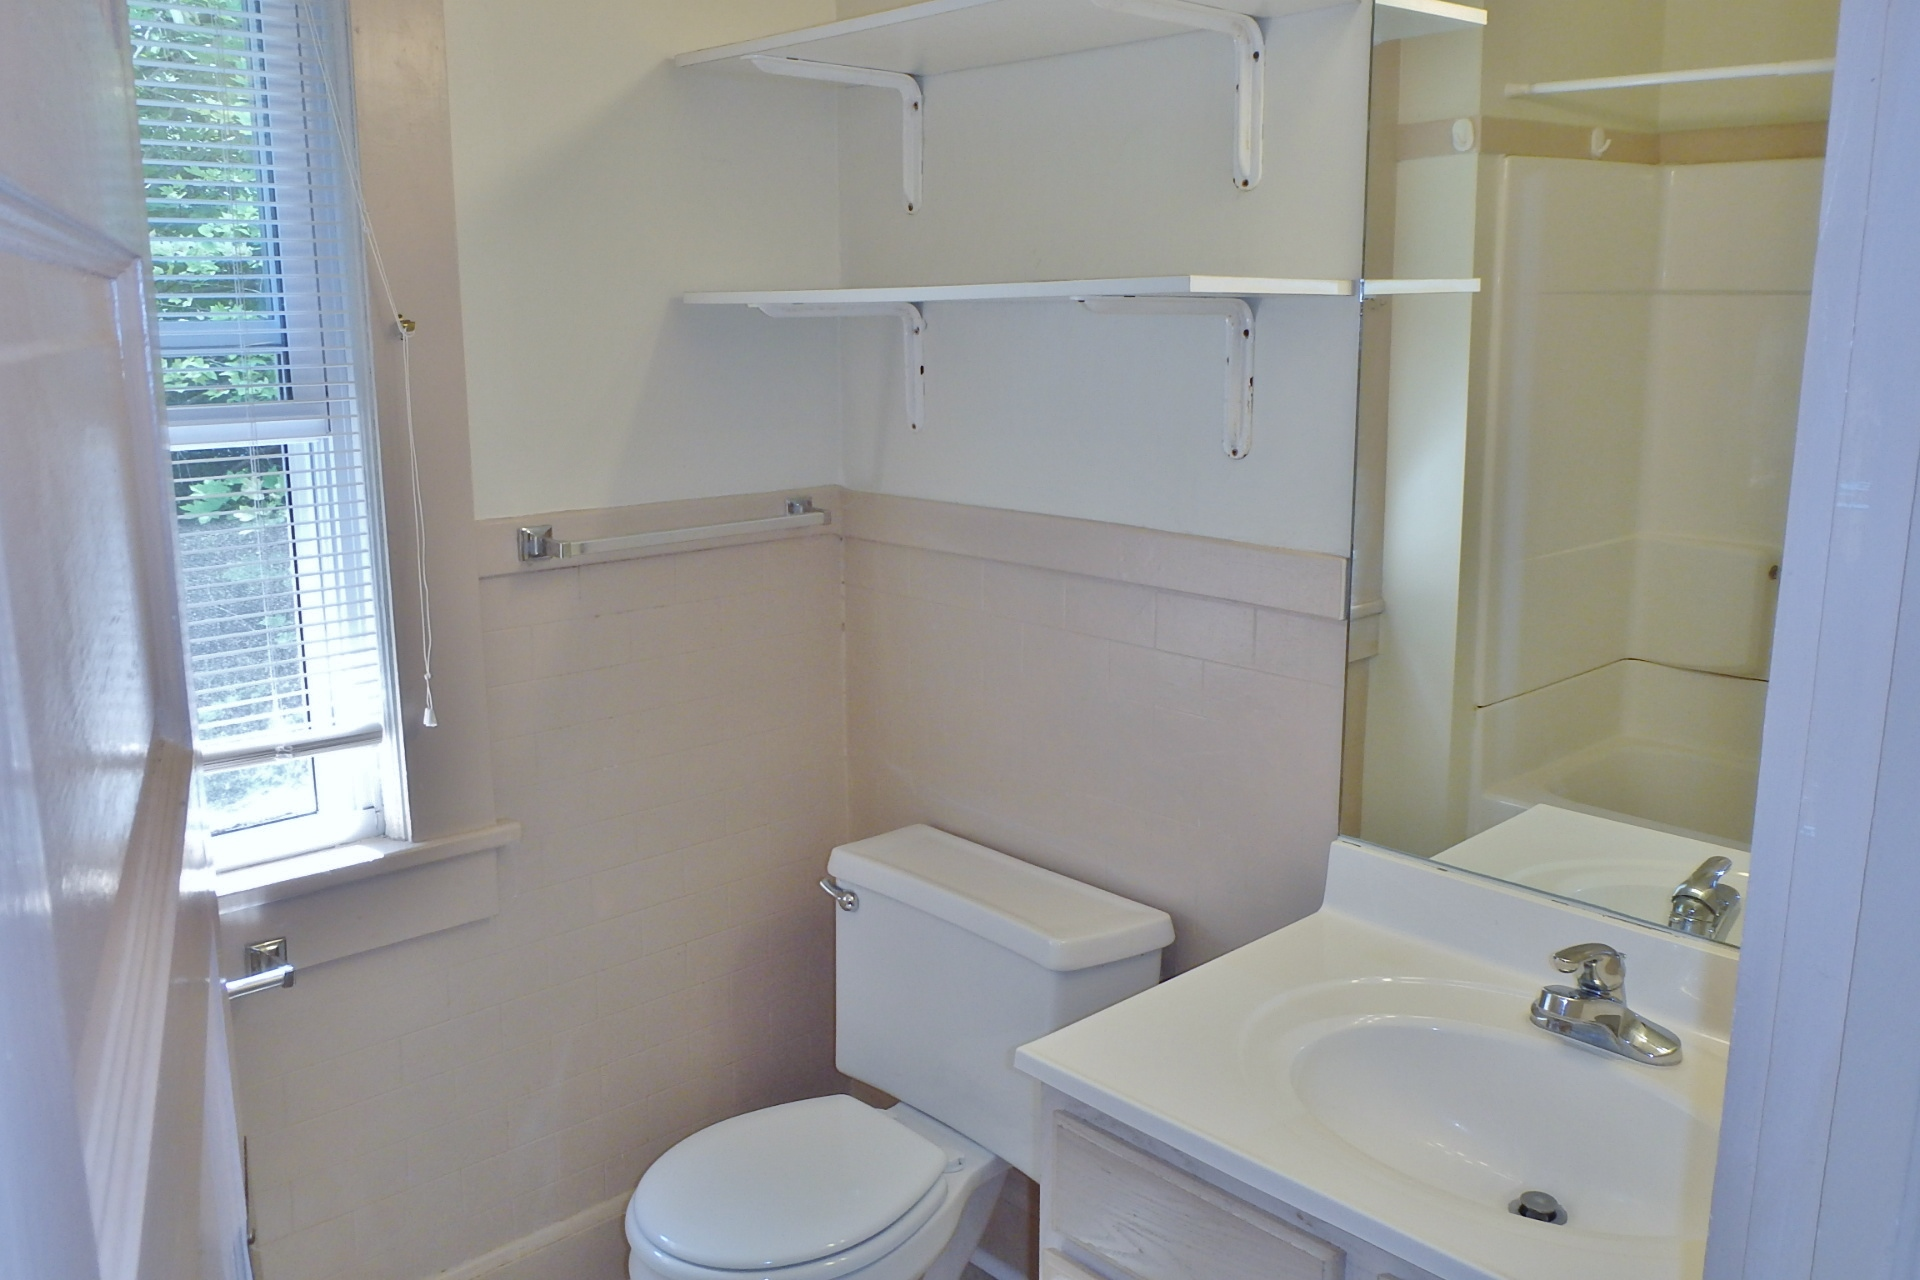 Bathroom photo of the house for rent at 250 S. Barnard Street, State College.